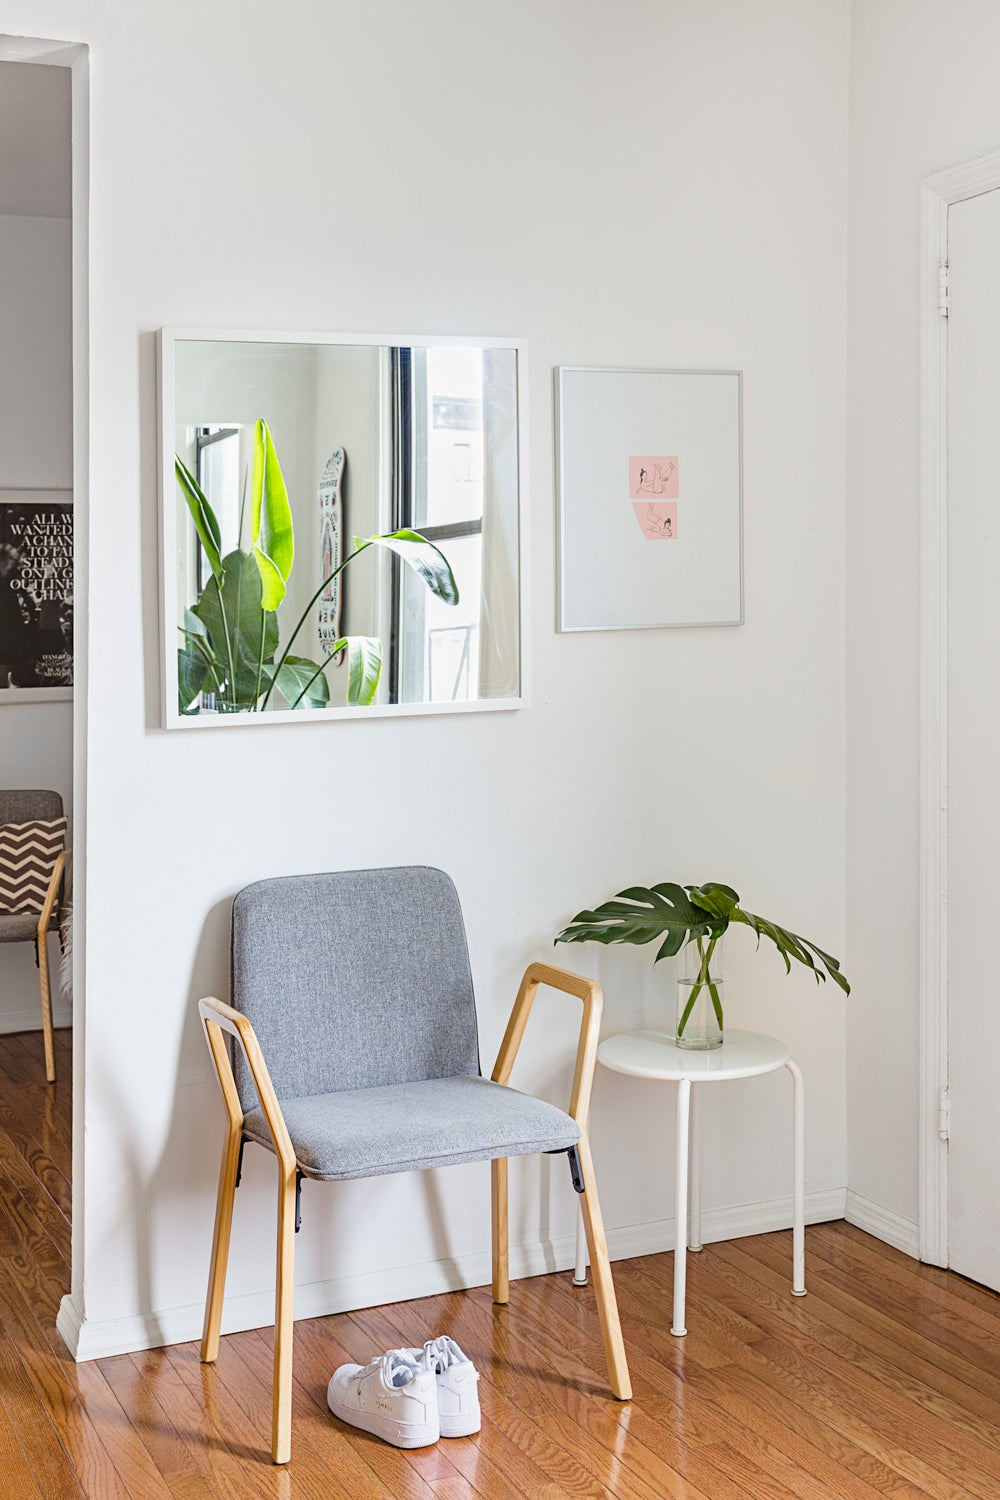 Living room with chair and white walls